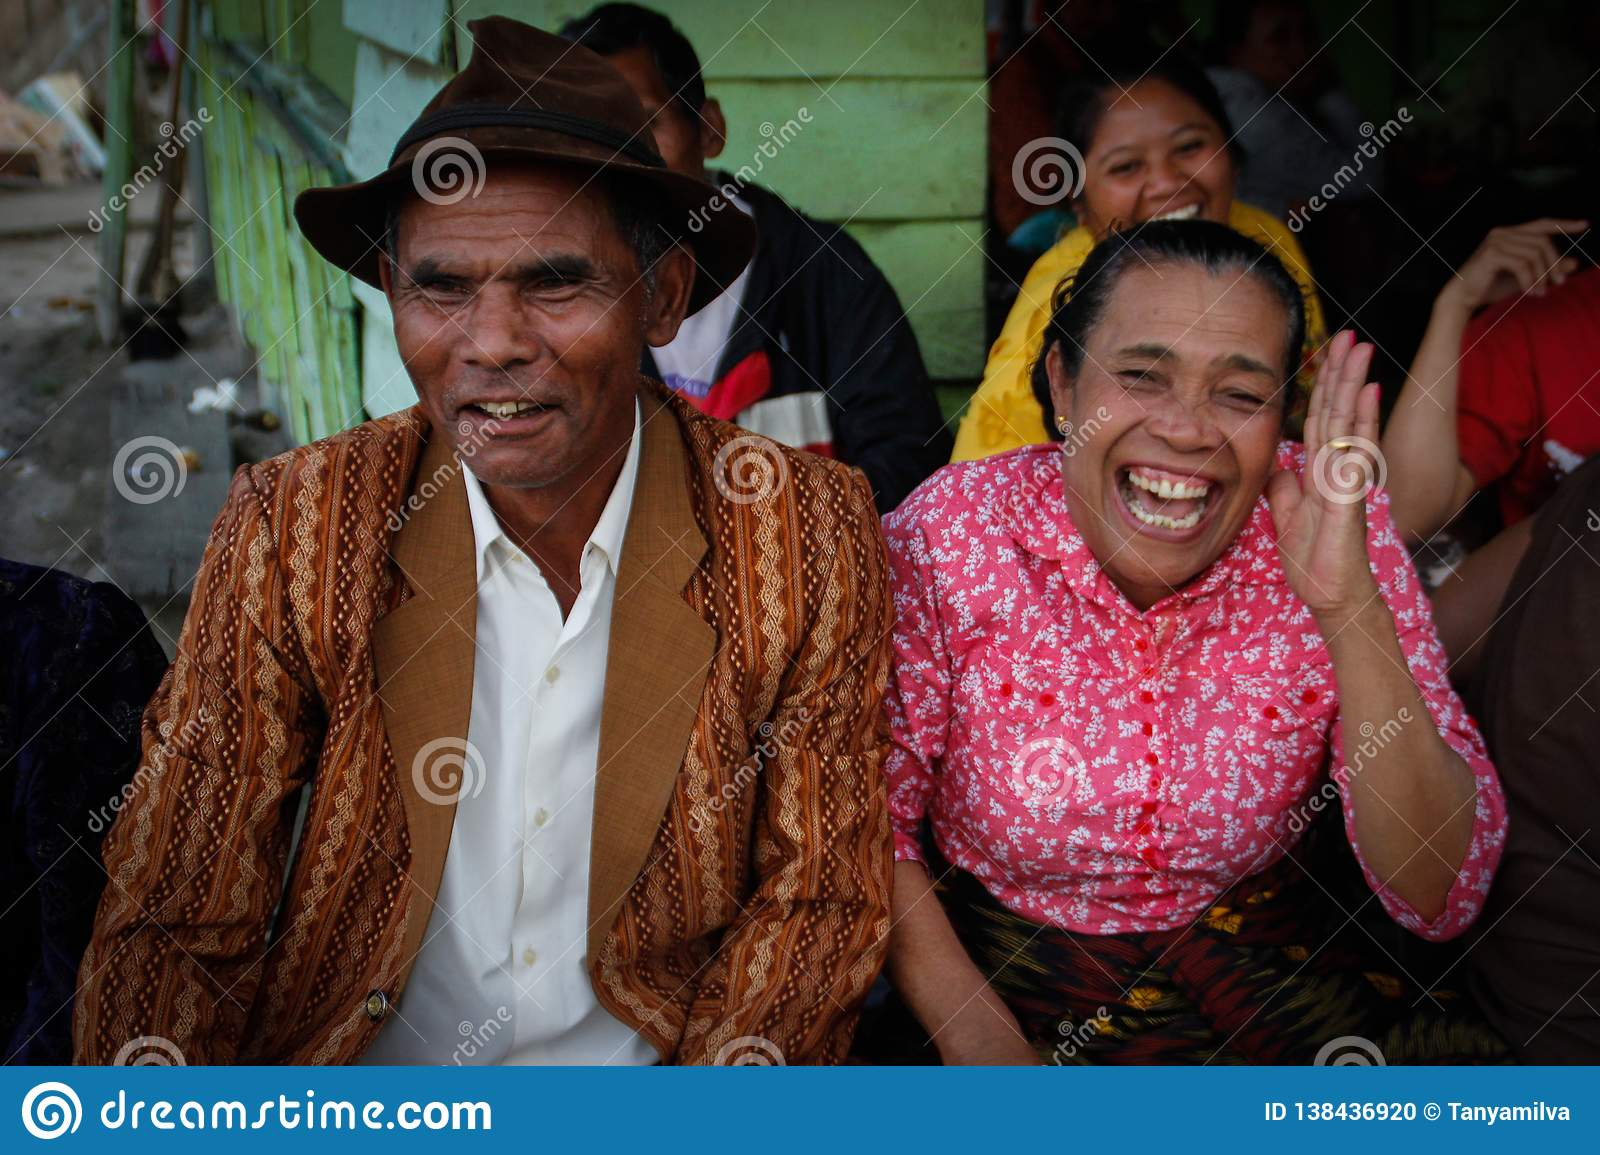 very cheerful laughing and fumbling Indonesian elderly woman in a pink blouse and her stylishly dressed man in a brown hat